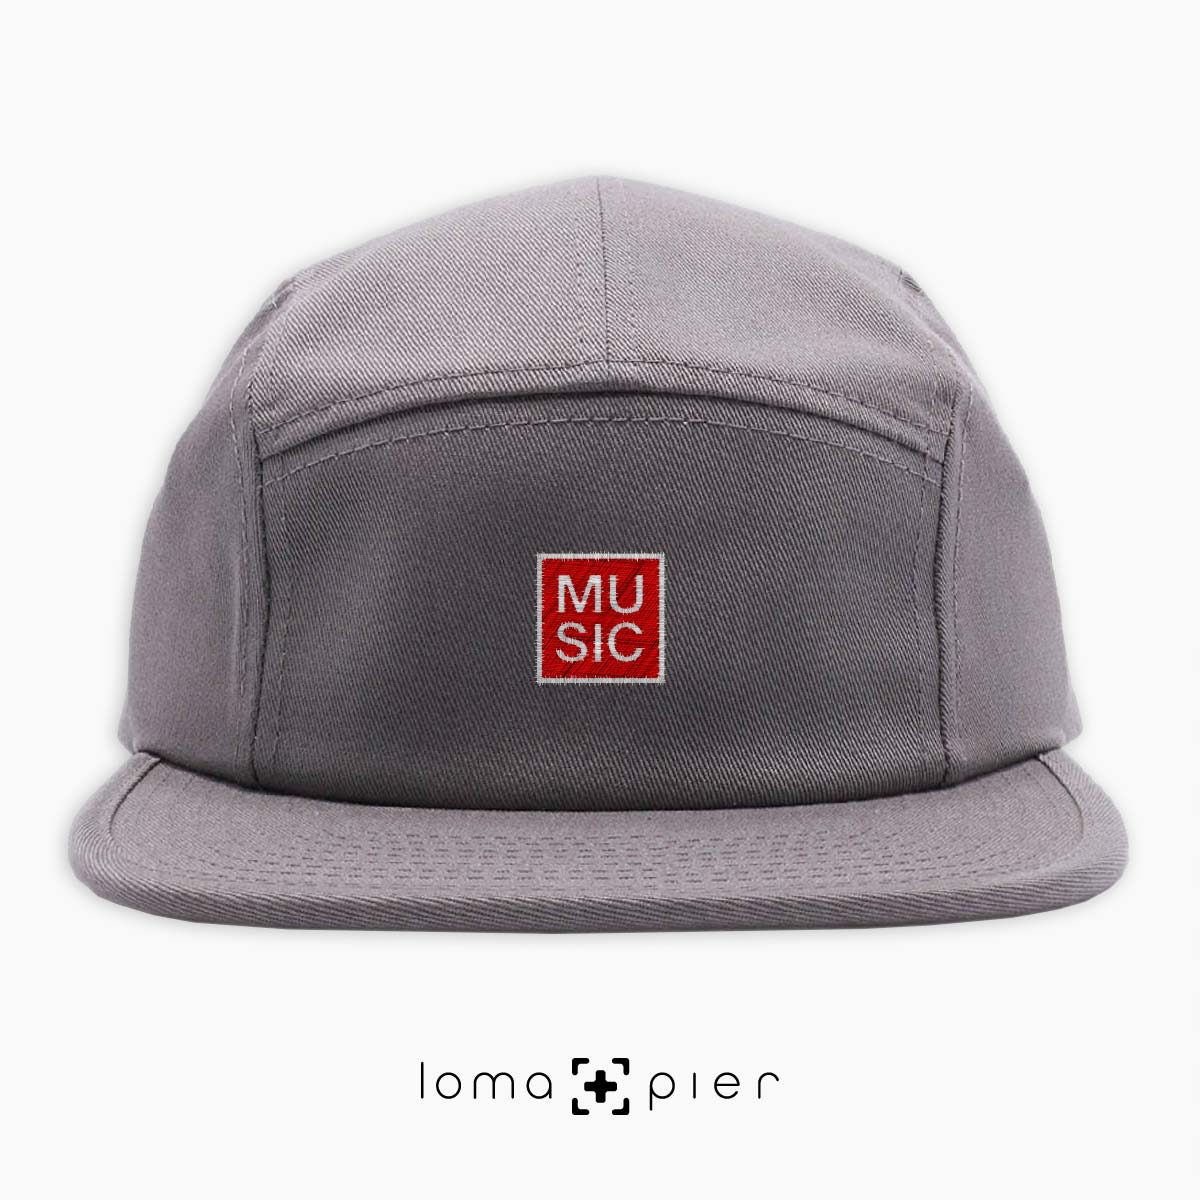 MUSIC BOX cotton 5-panel hat in grey by loma+pier hat store